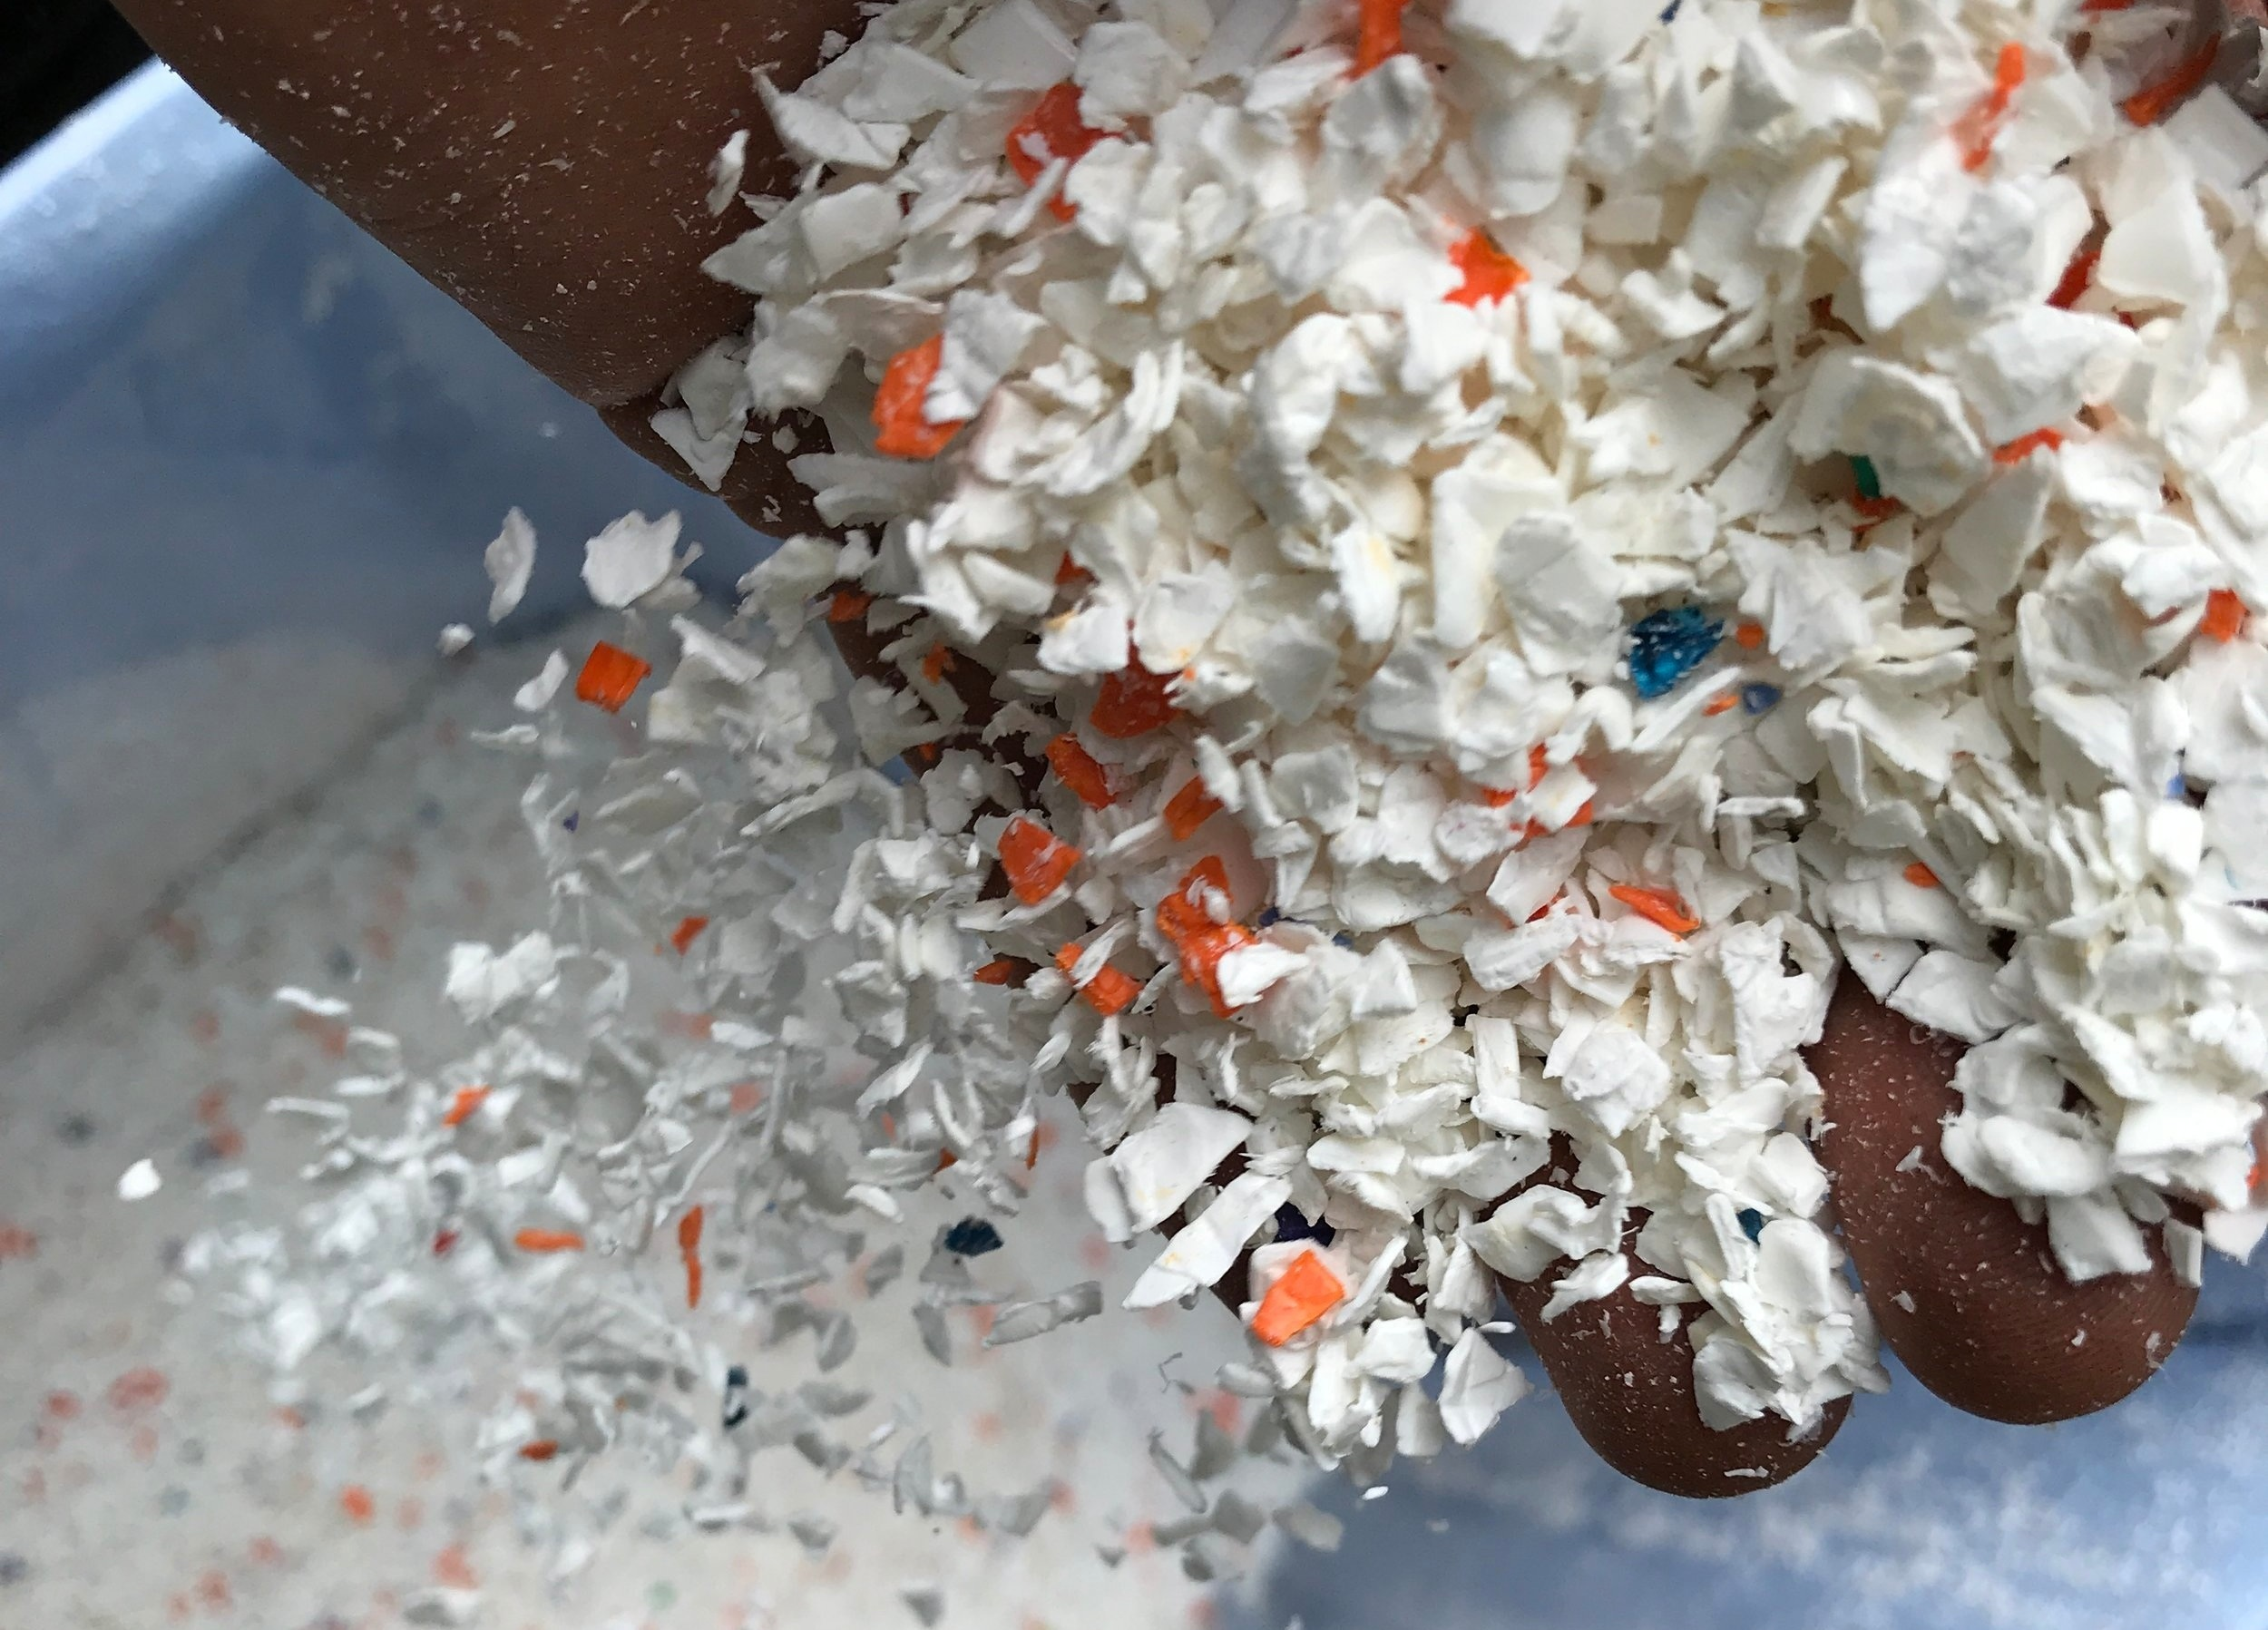 WE SORT YOUR PLASTIC WASTE - Trebo offers Sorting as a Service for all your industrial plastic waste – mixtures containing up to four different types such as ABS/POM/PA/PS etc.Call us at +45 22 41 99 03 and we will transform your waste into a valuable asset!